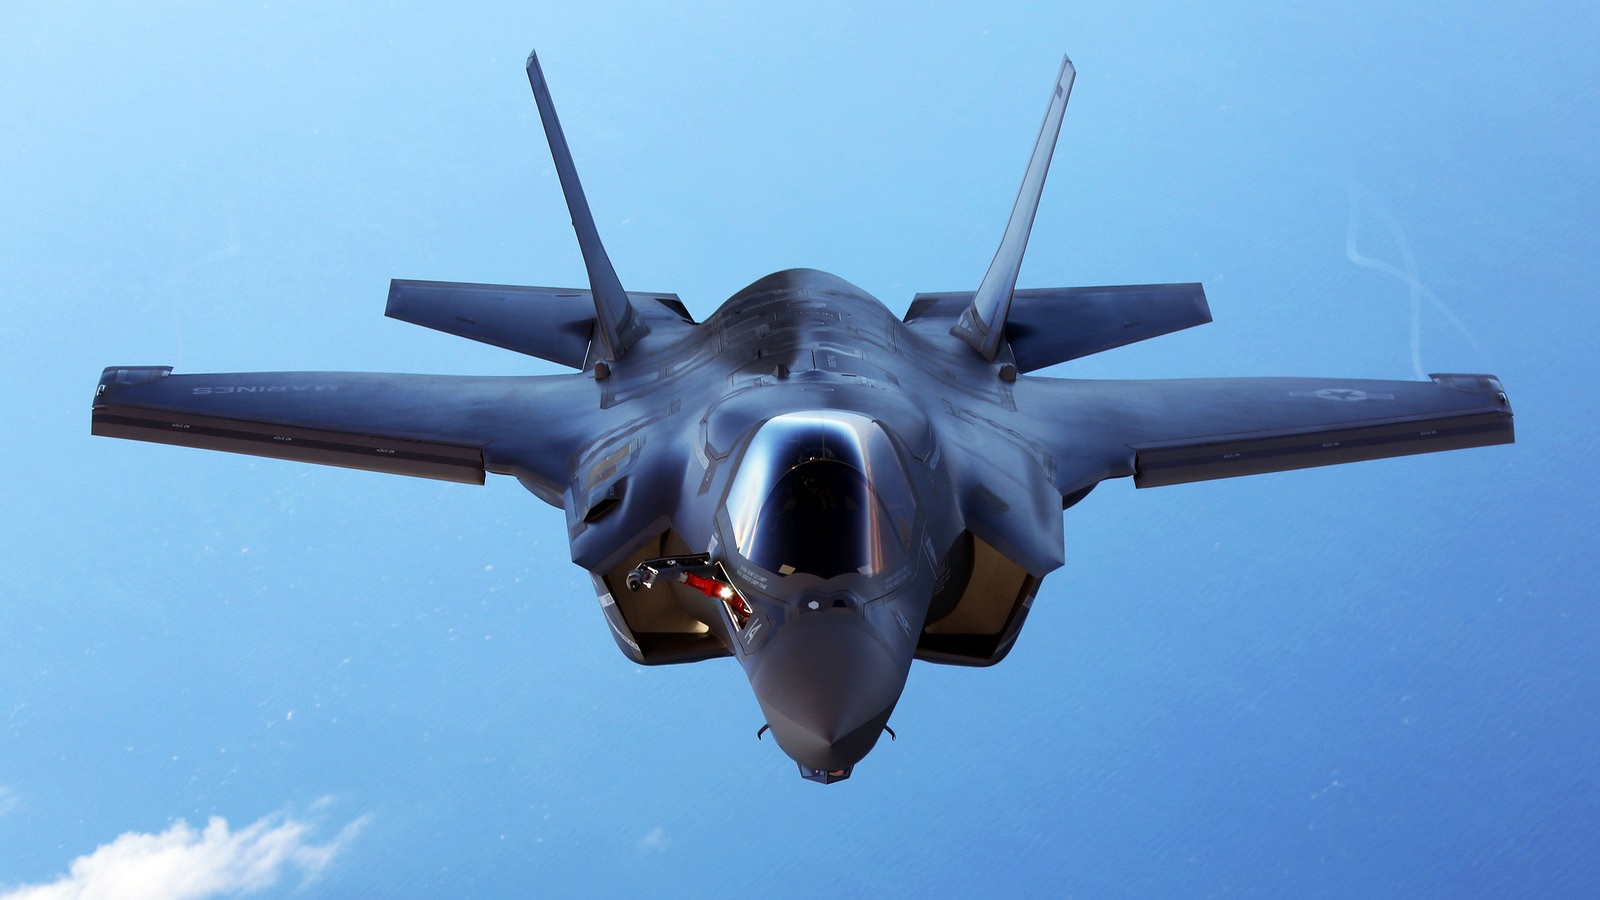 The Marines' Version of the F-35 Is Already Waging War